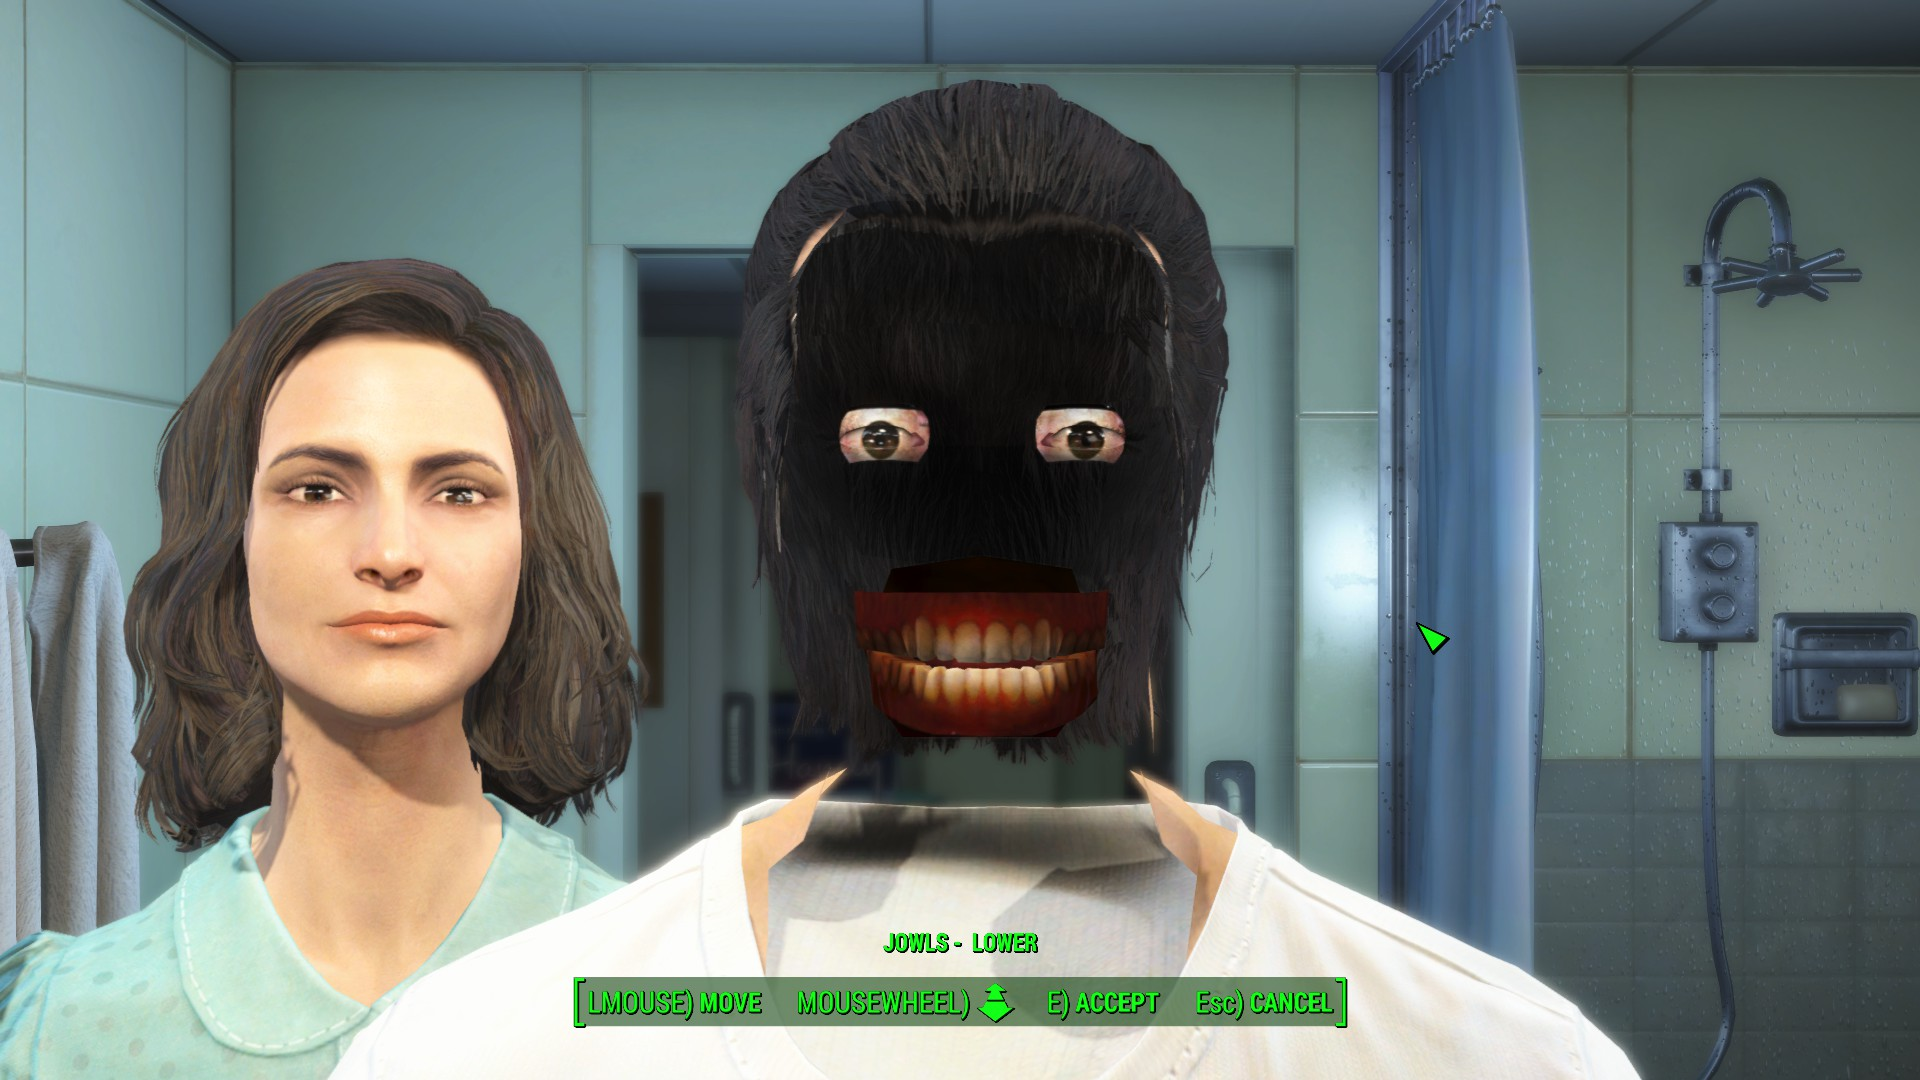 Fallout 4 new vendor glitch / exploit after patch! Infinite free.